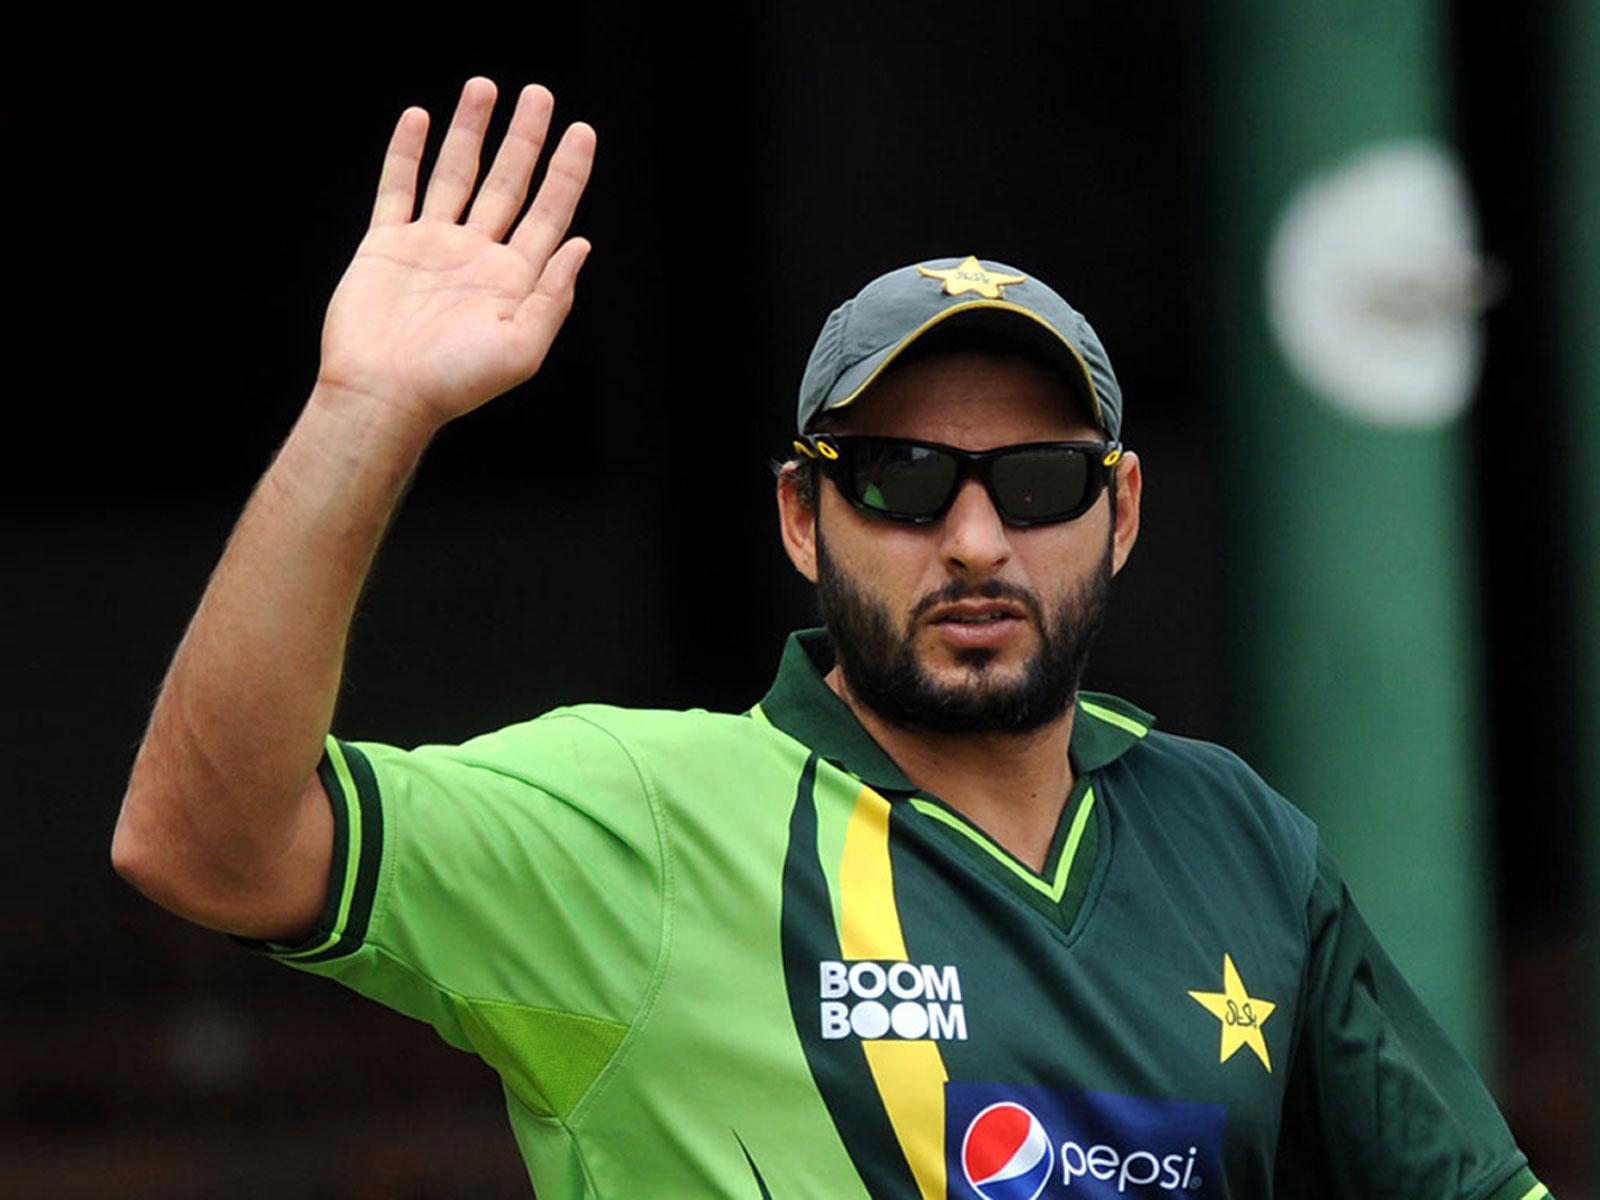 Pakistan Boom Boom Sahid Afridi High Resolution Wallpapers